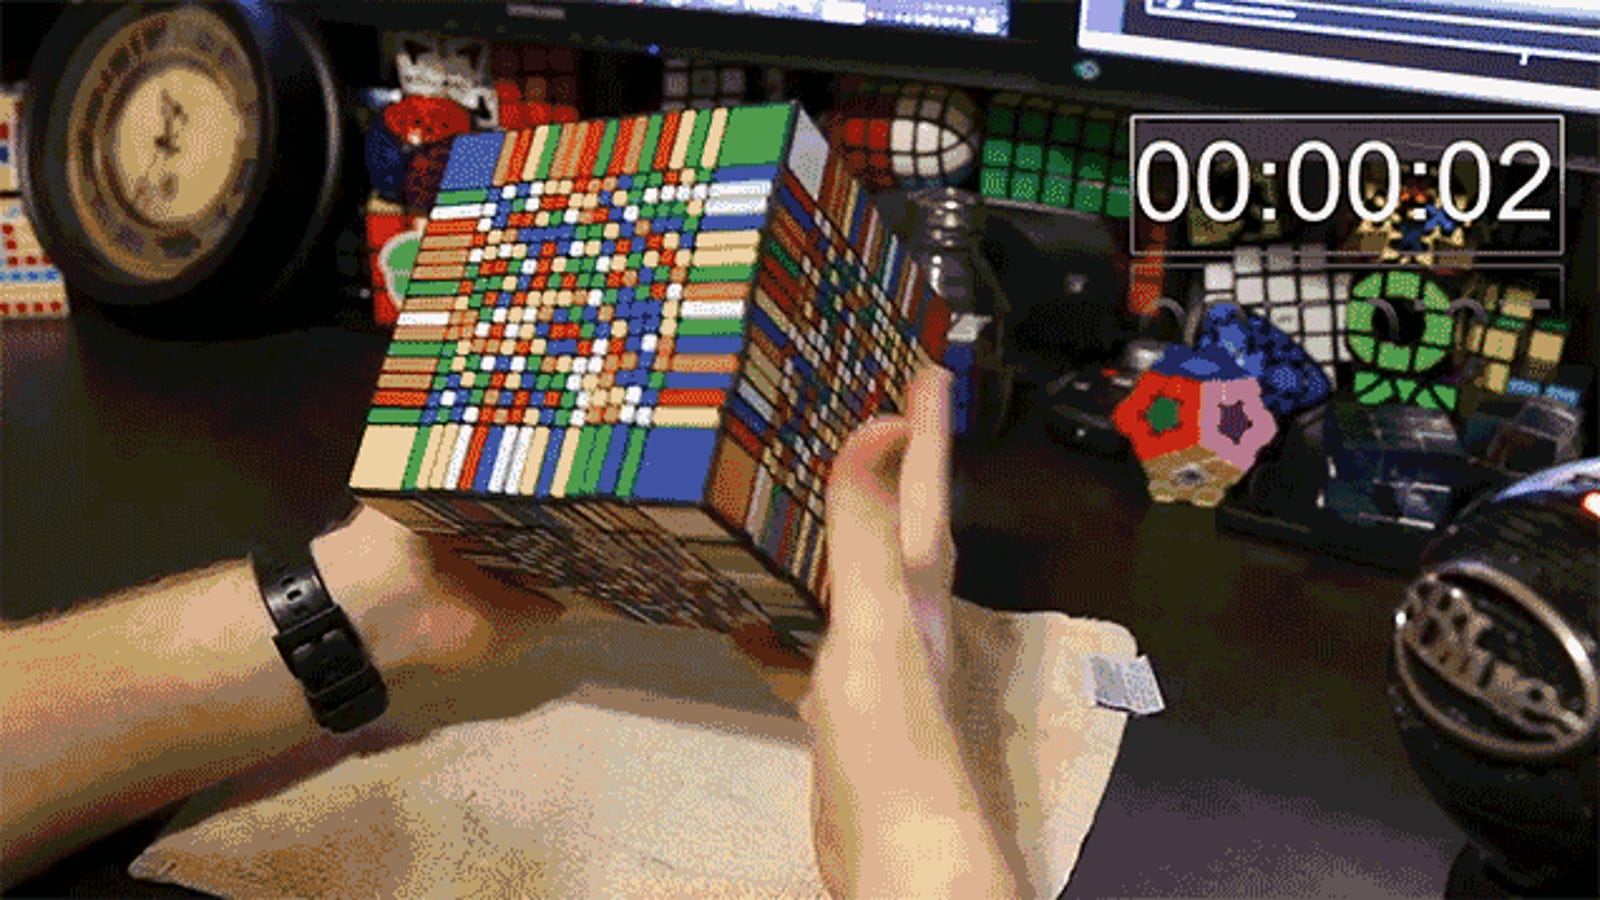 It Took This Guy Over 7 Hours To Solve the World's Hardest Rubik's Cube